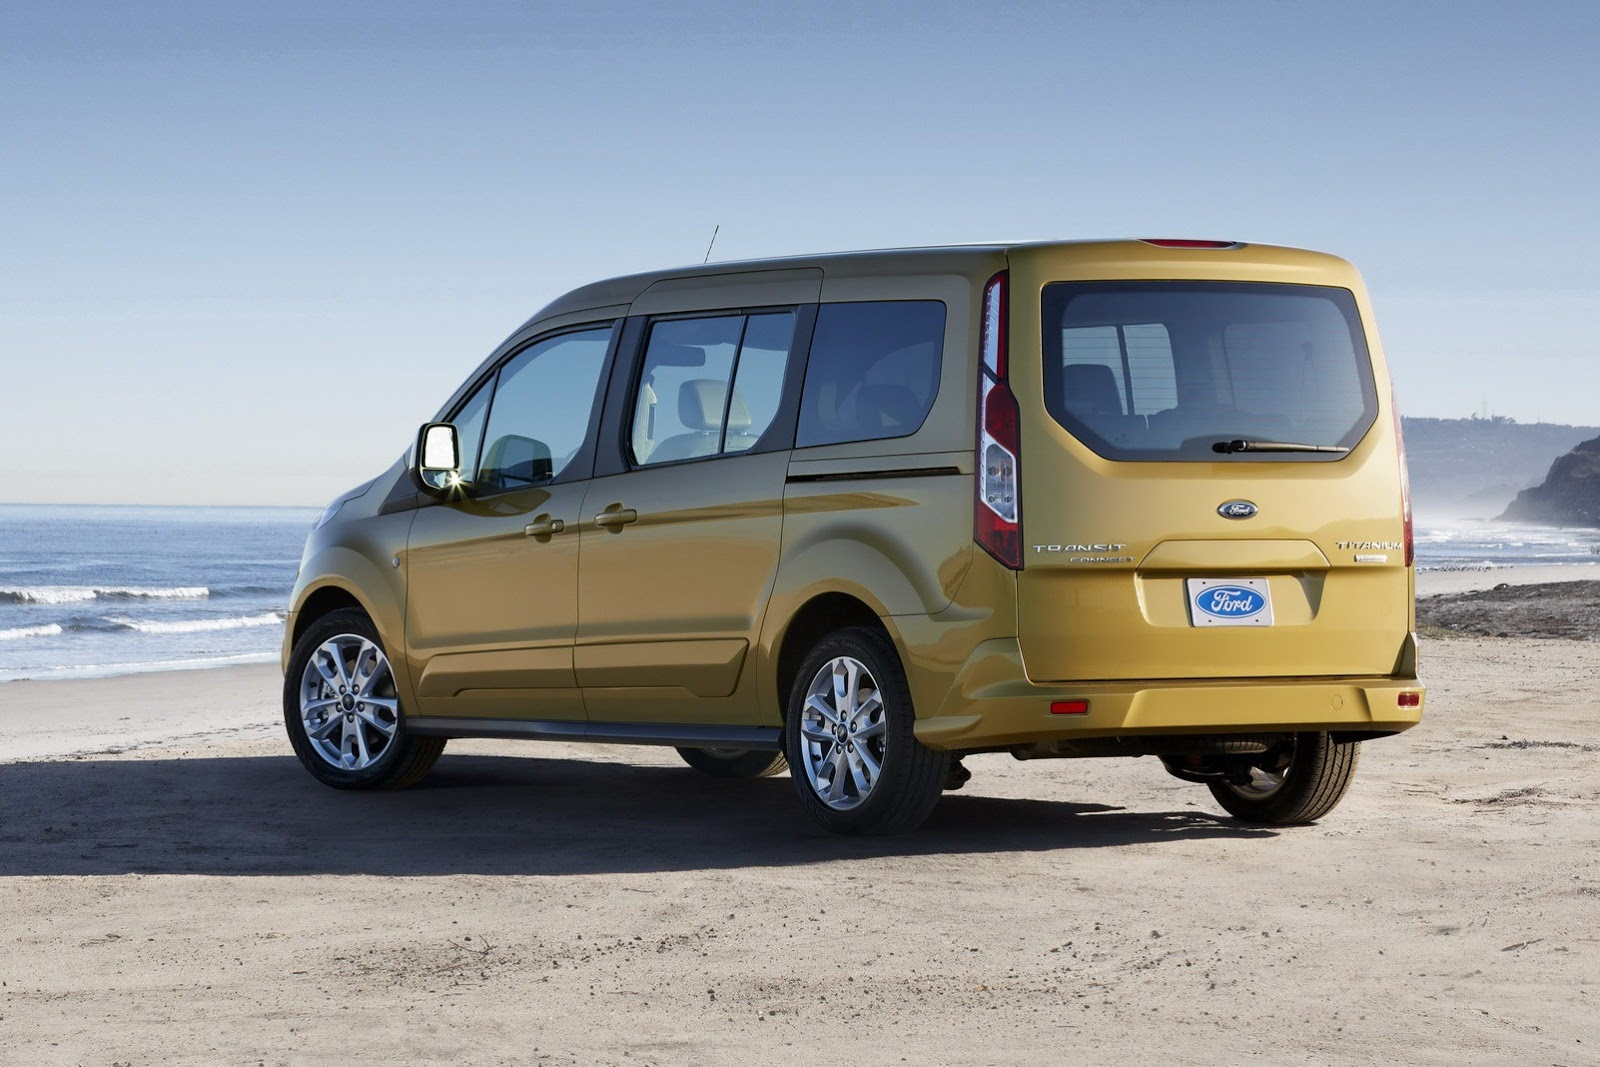 ford transit connect wagon from story  unveiled in la video photo gallery image editor free download